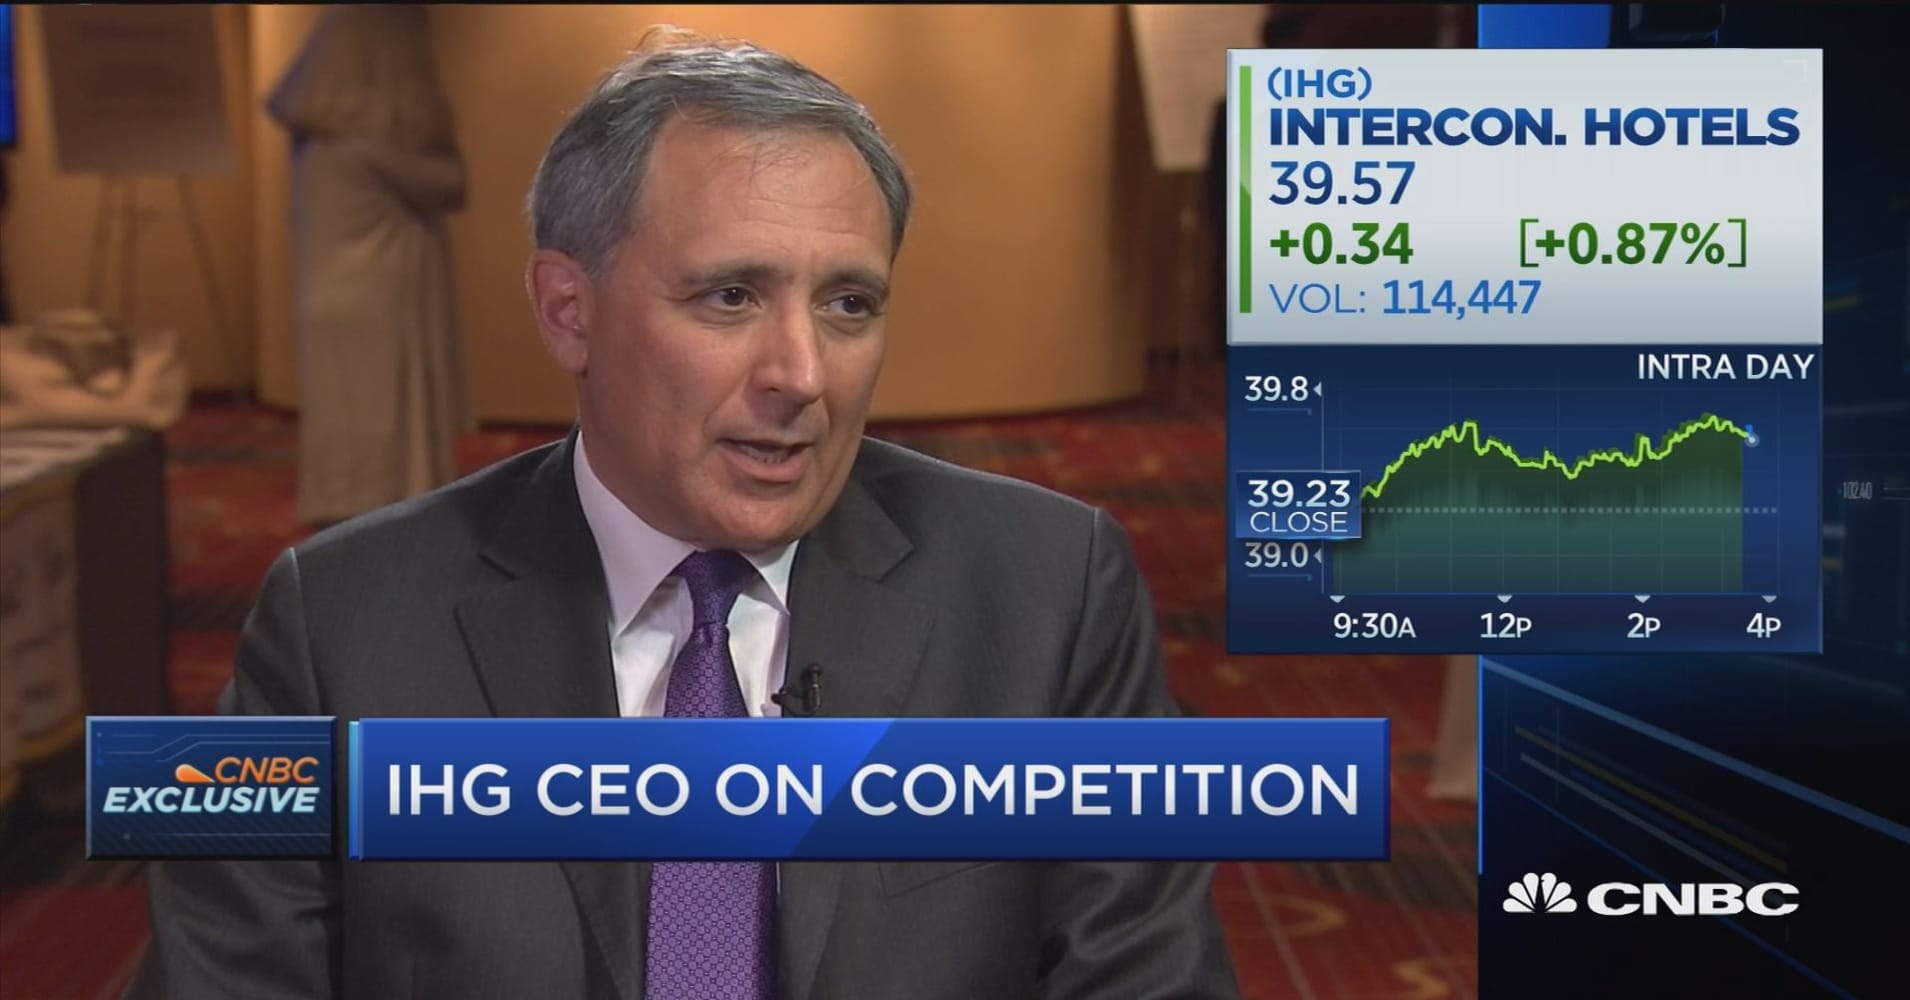 We have scale: IHG CEO